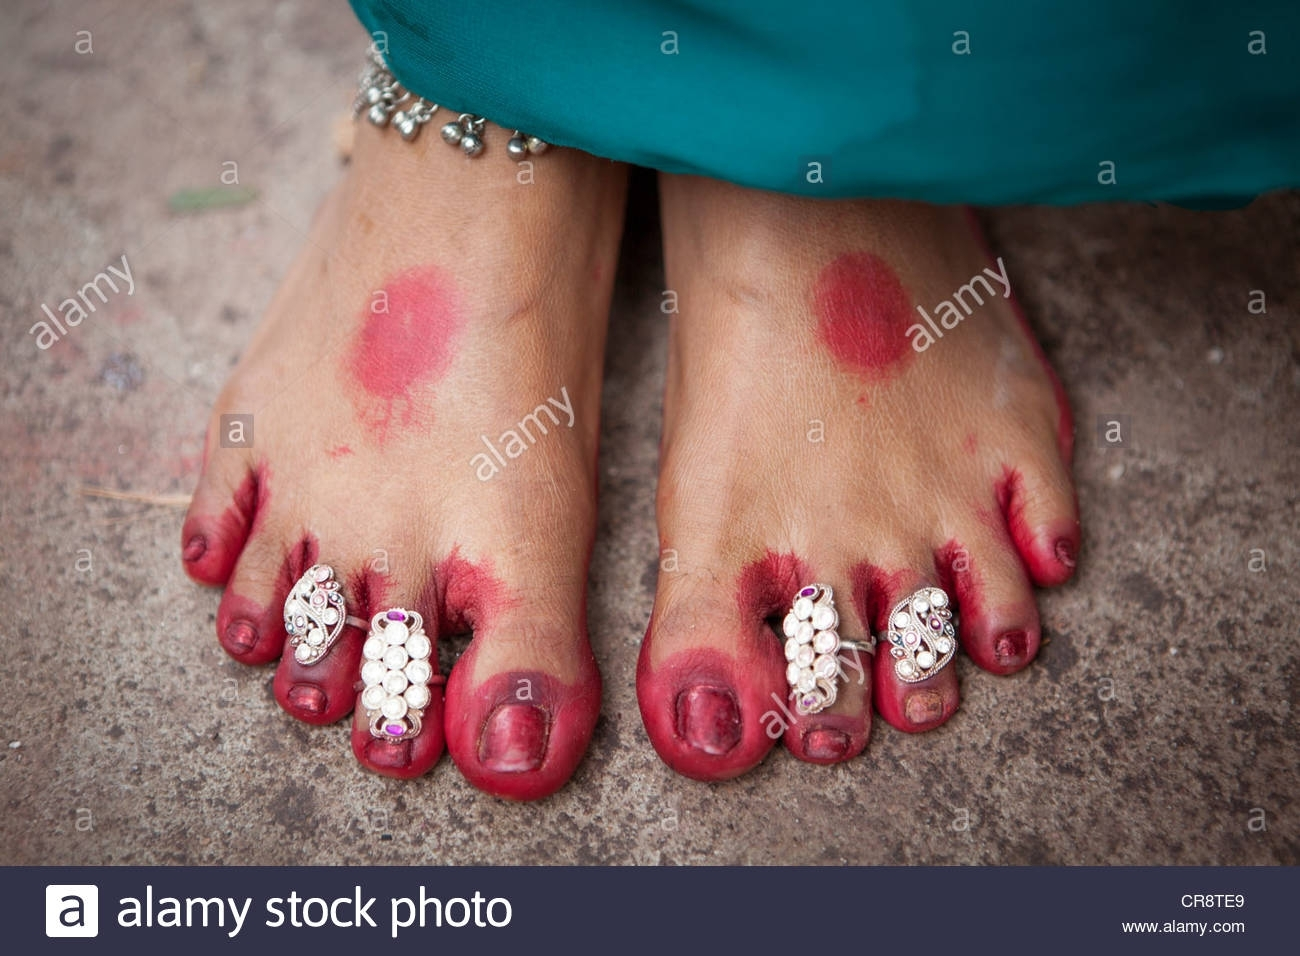 Toe Ring Stock Photos & Toe Ring Stock Images – Alamy Throughout Most Popular Women Toe Rings (View 7 of 15)